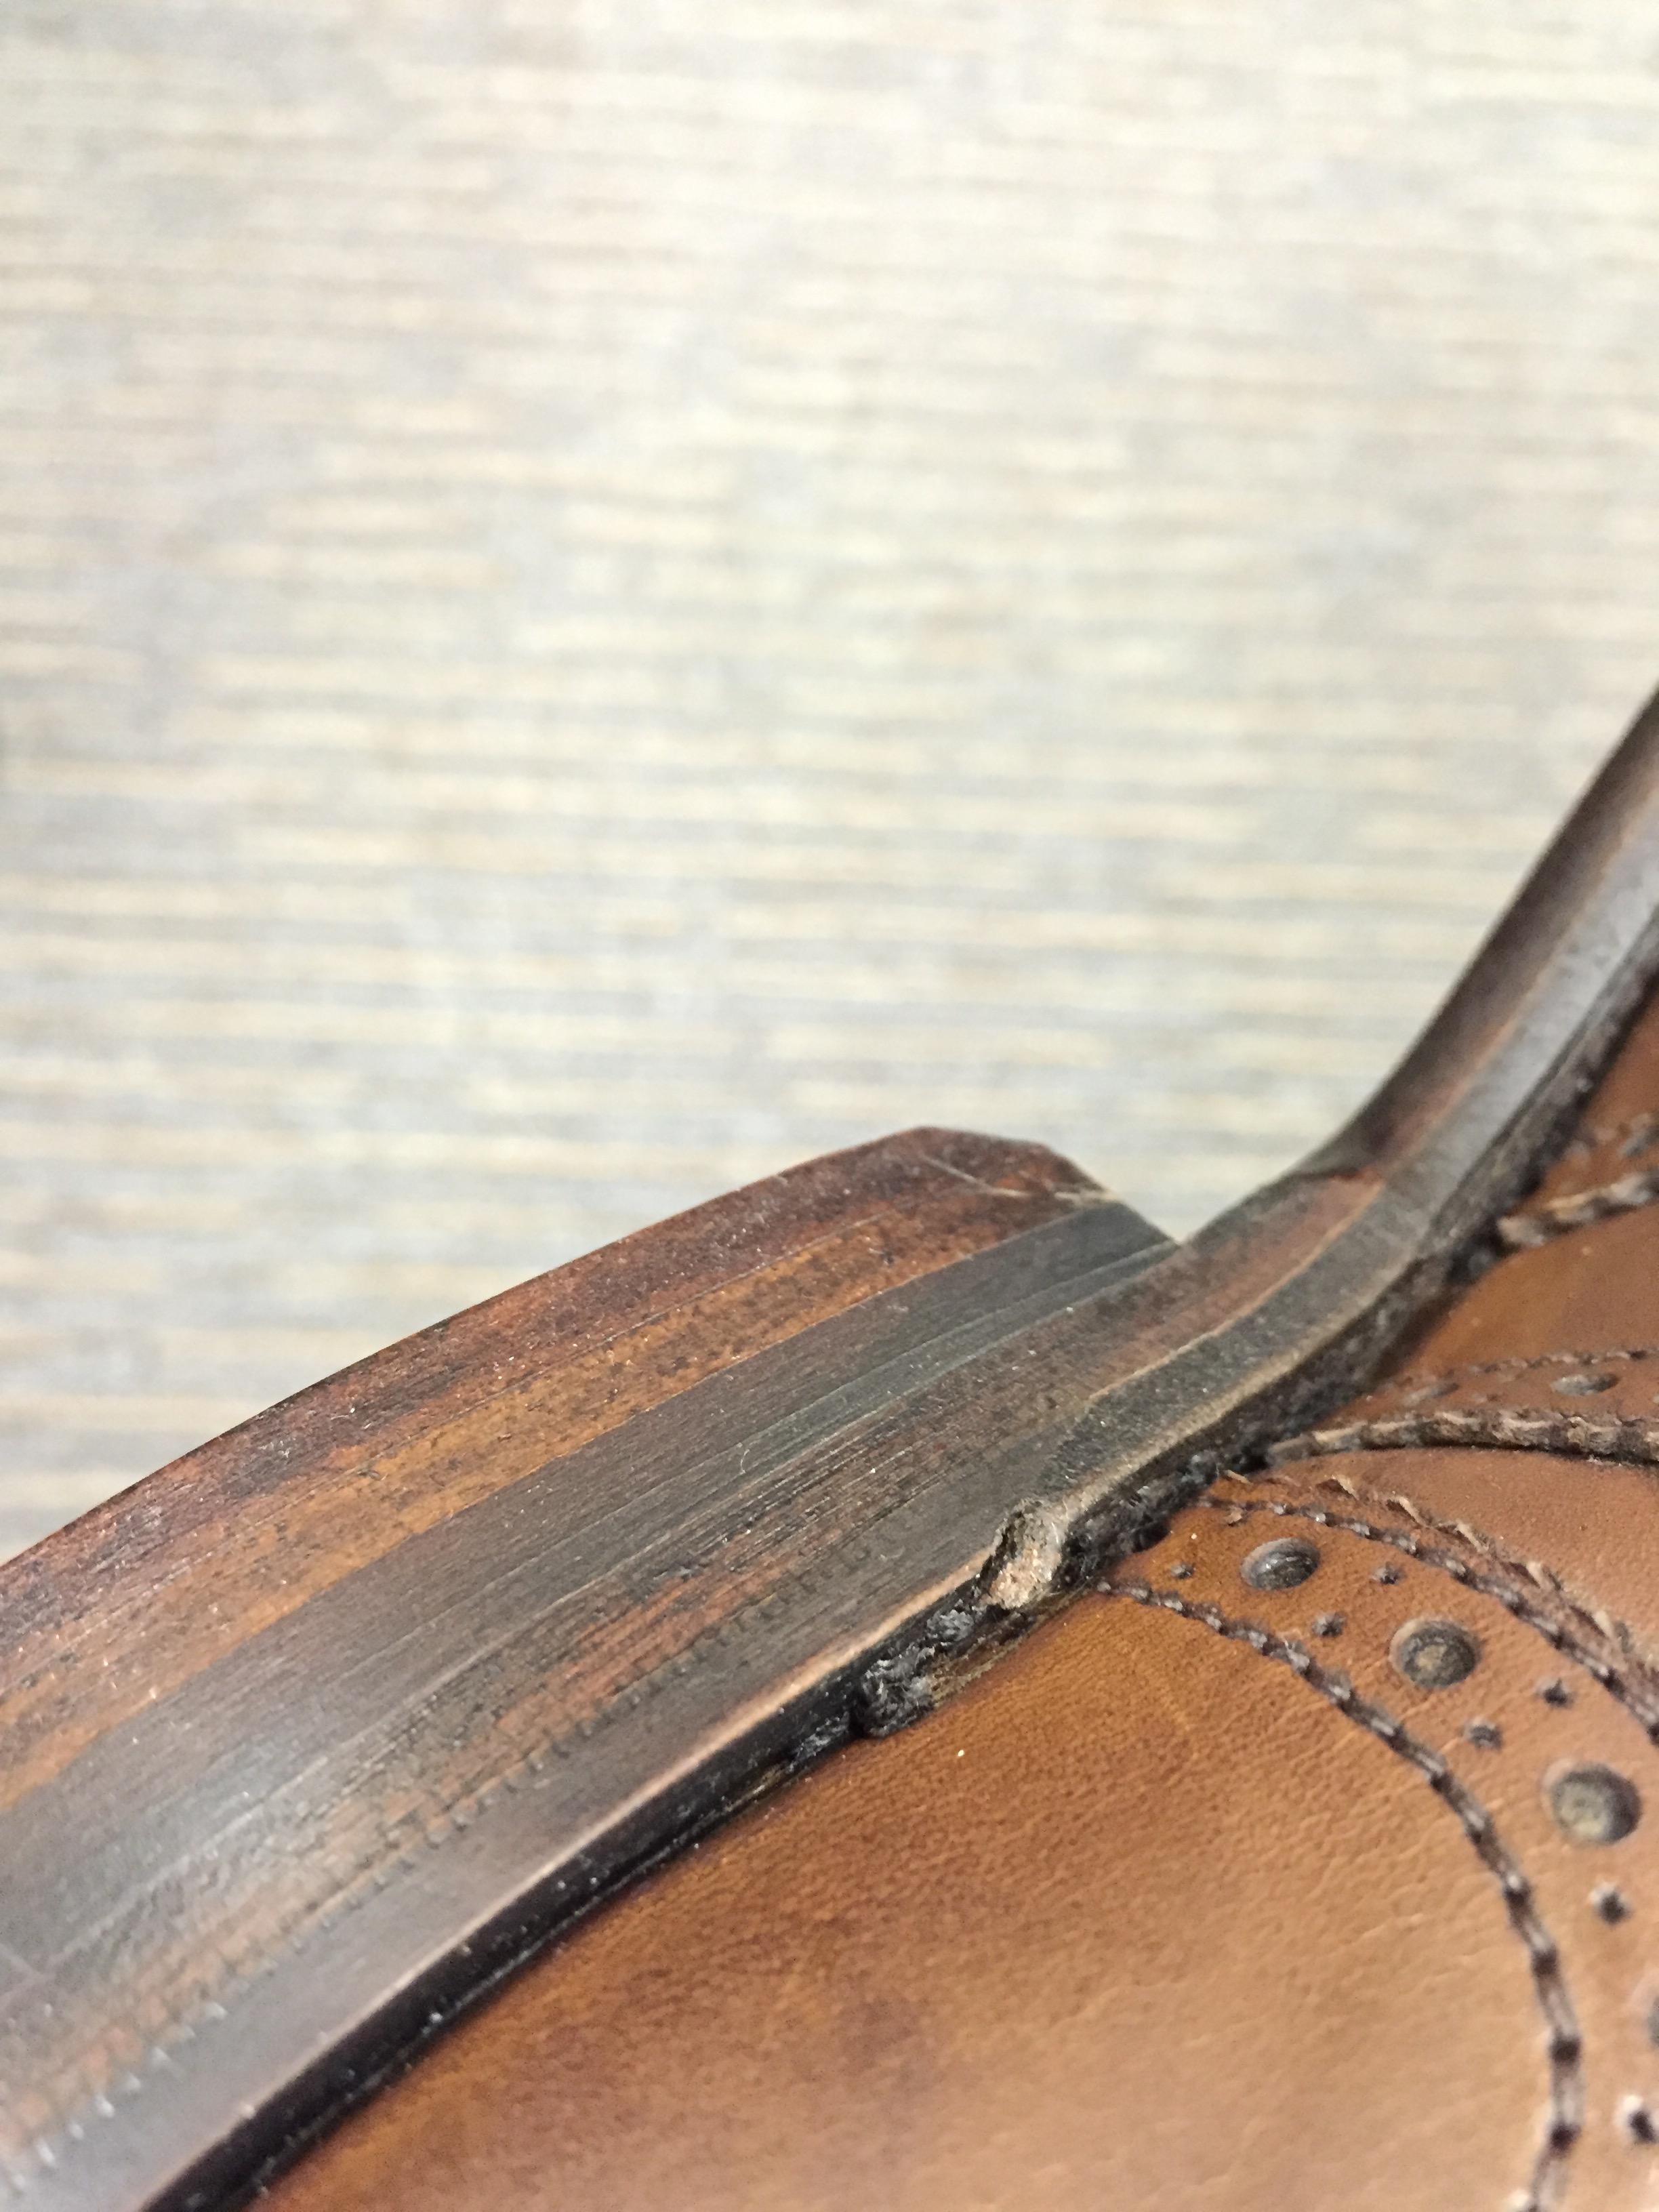 Is untidy welt finish on Loake 1880 shoes normal?